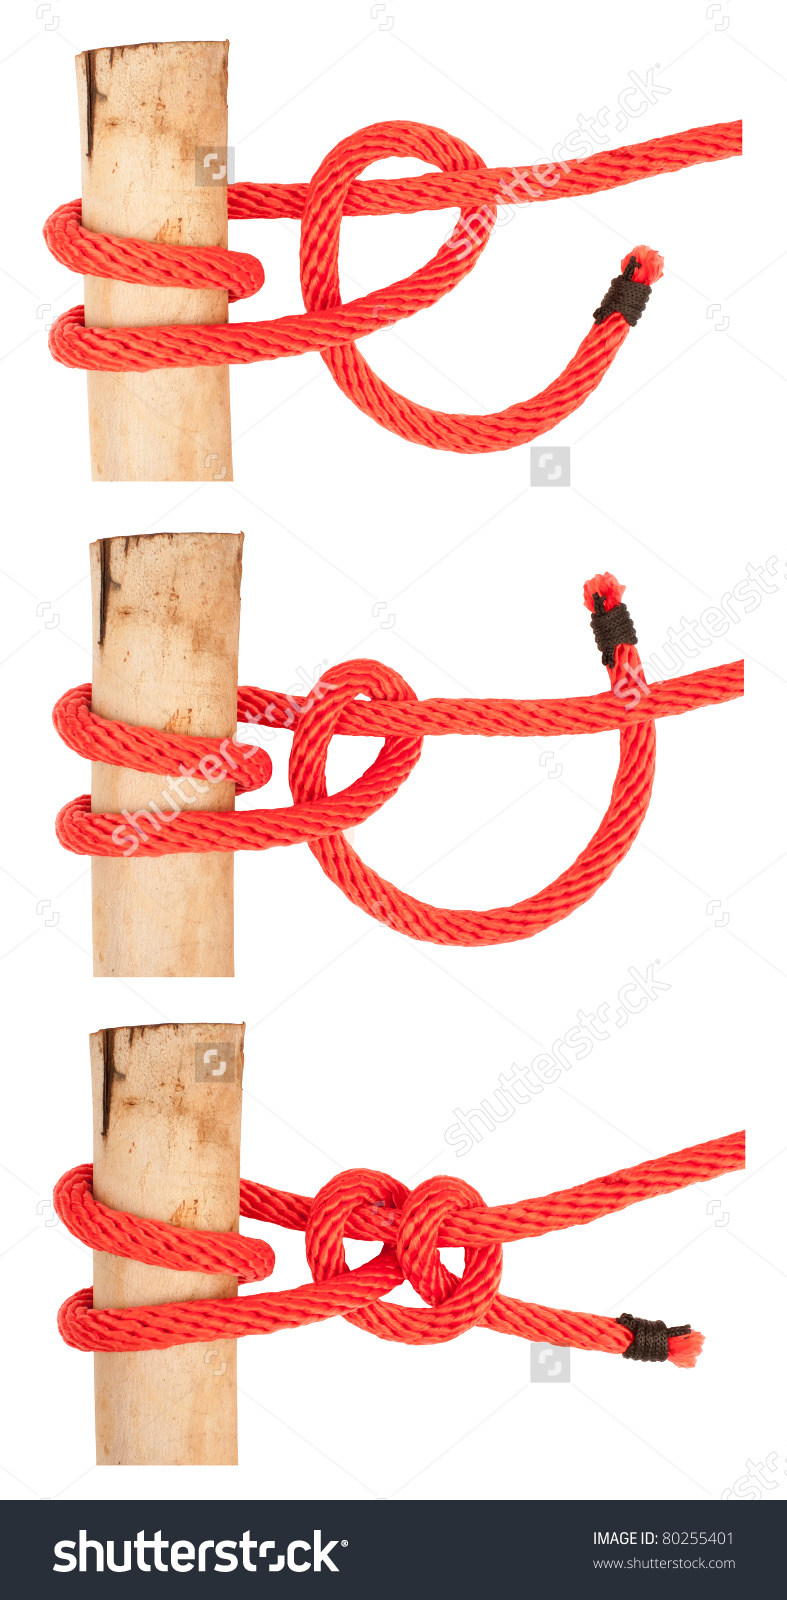 Knot Series : Round Turn And Two Half Hitch For Scout Army Sailor.